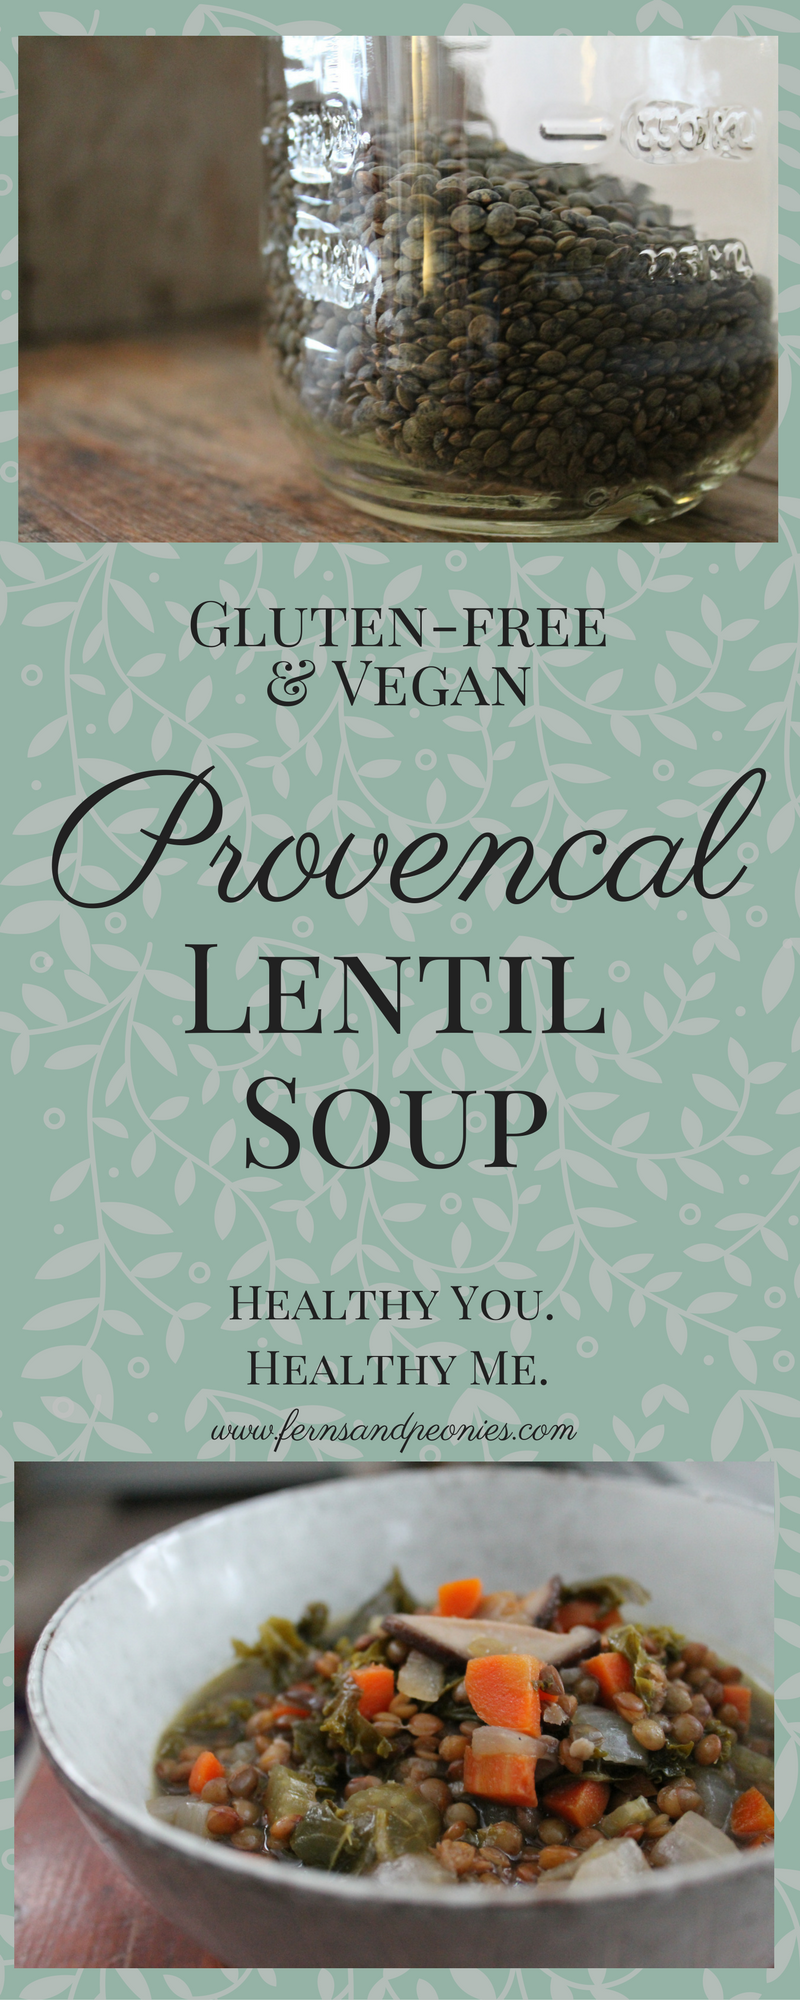 Gluten-free, vegan, delicious, and oh so good for you Provencal Lentil Soup. Find the recipe and more at www.fernsandpeonies.com